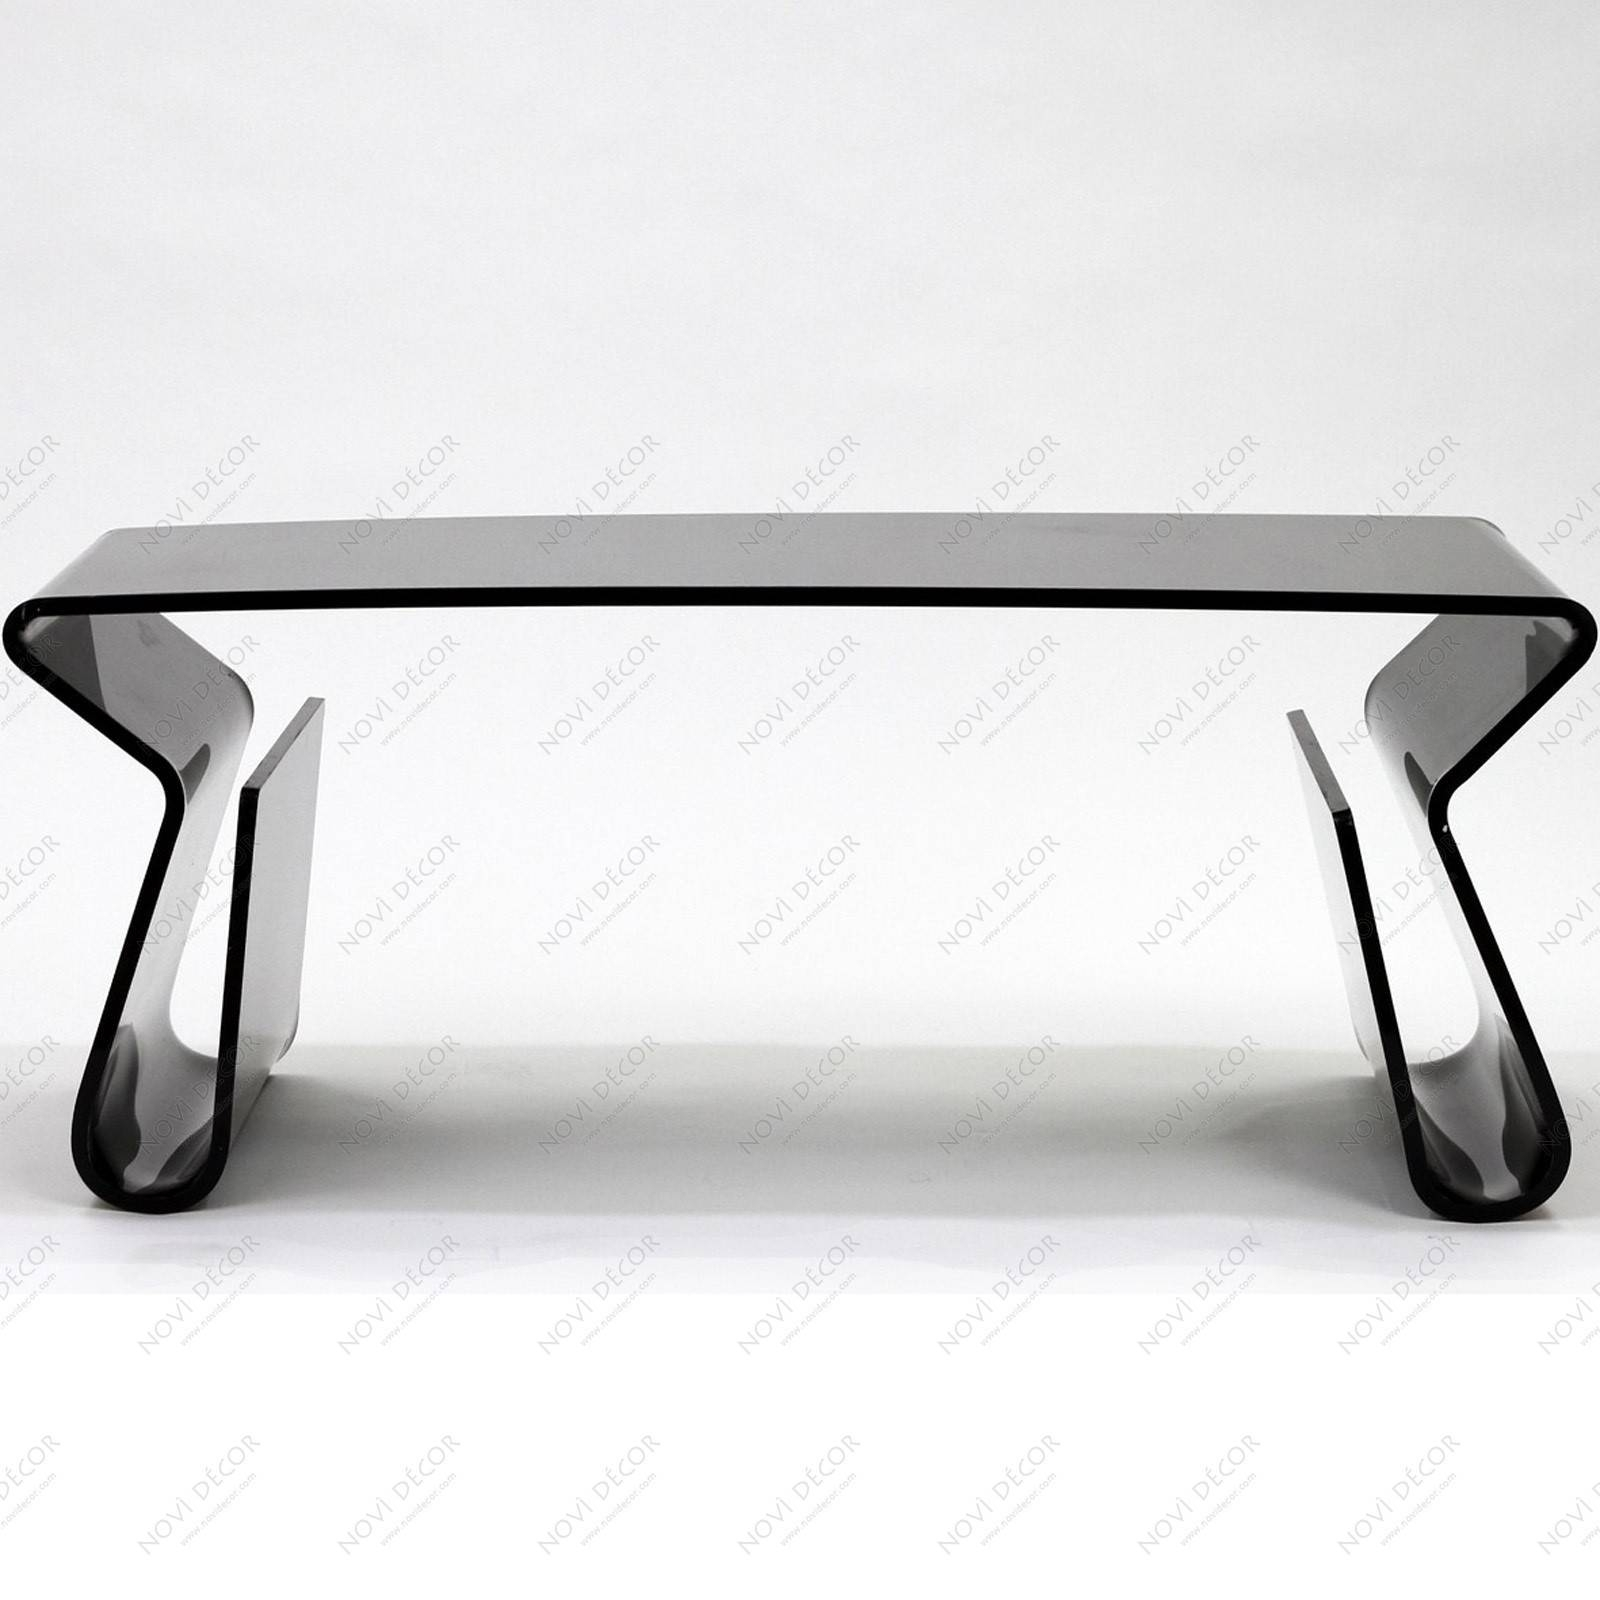 30 Best Collection of Acrylic Coffee Tables With Magazine Rack